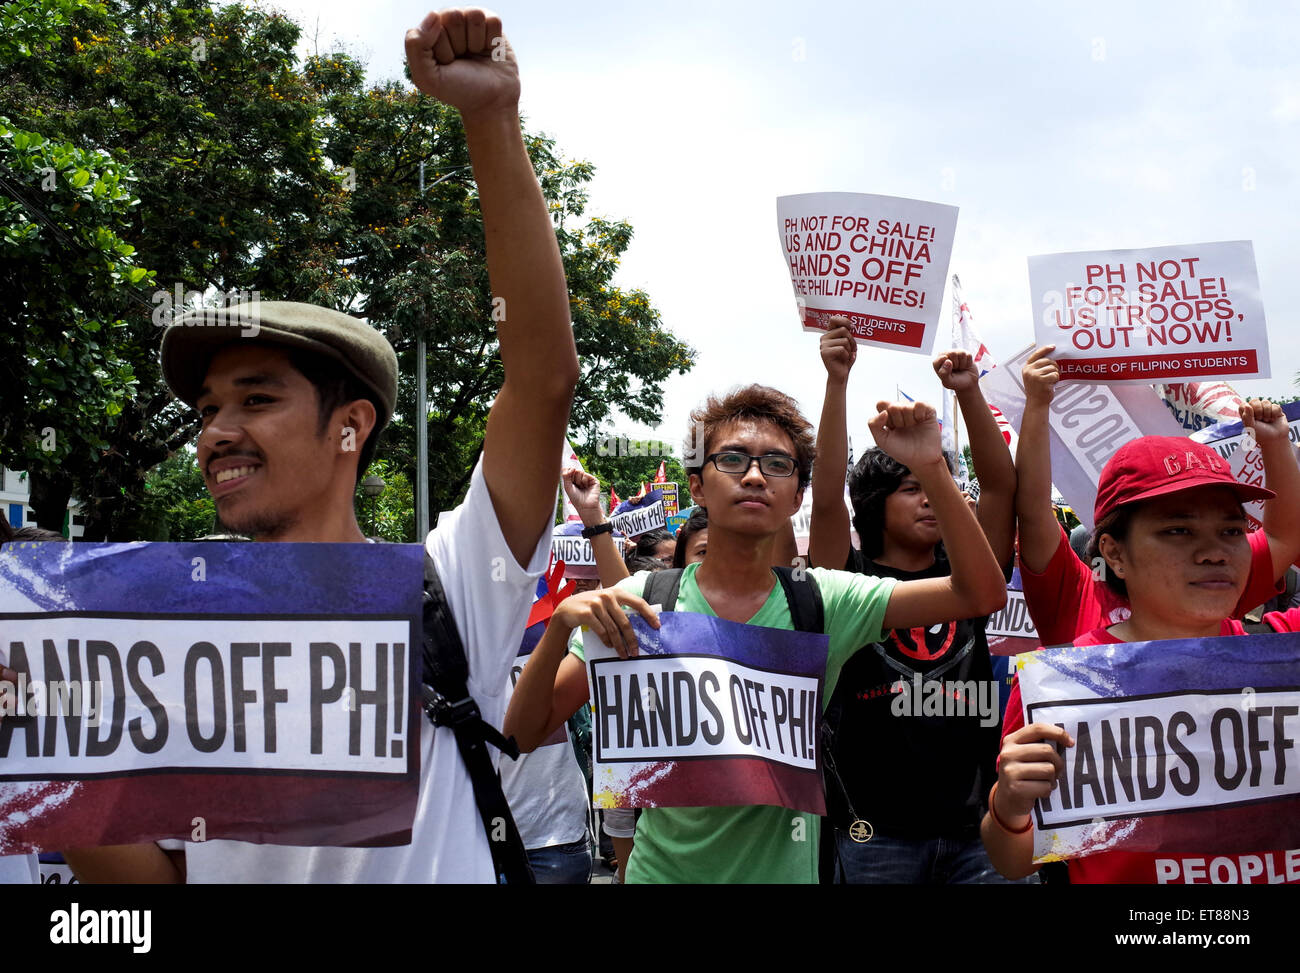 Manila, Philippines. 12th June, 2015. Protesters march towards the US embassy in commemoration of the 117th of Philippine - Stock Image